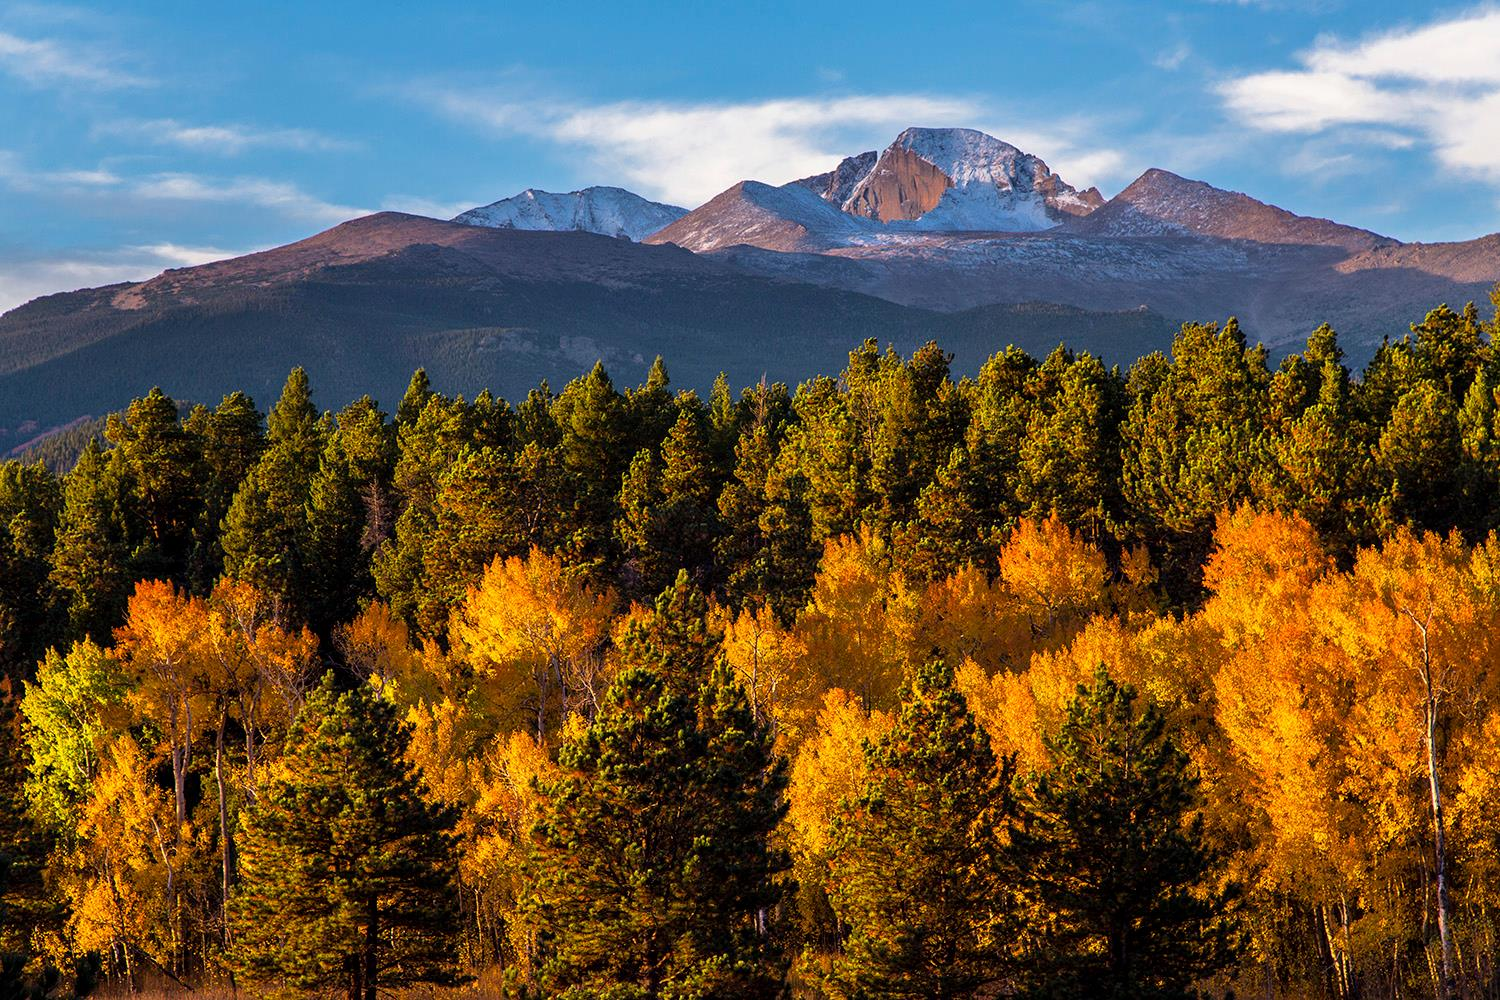 Check out this golden sunrise @RockyNPS! Photo by Jacob W Frank #Colorado https://t.co/XjeEPUdtFD